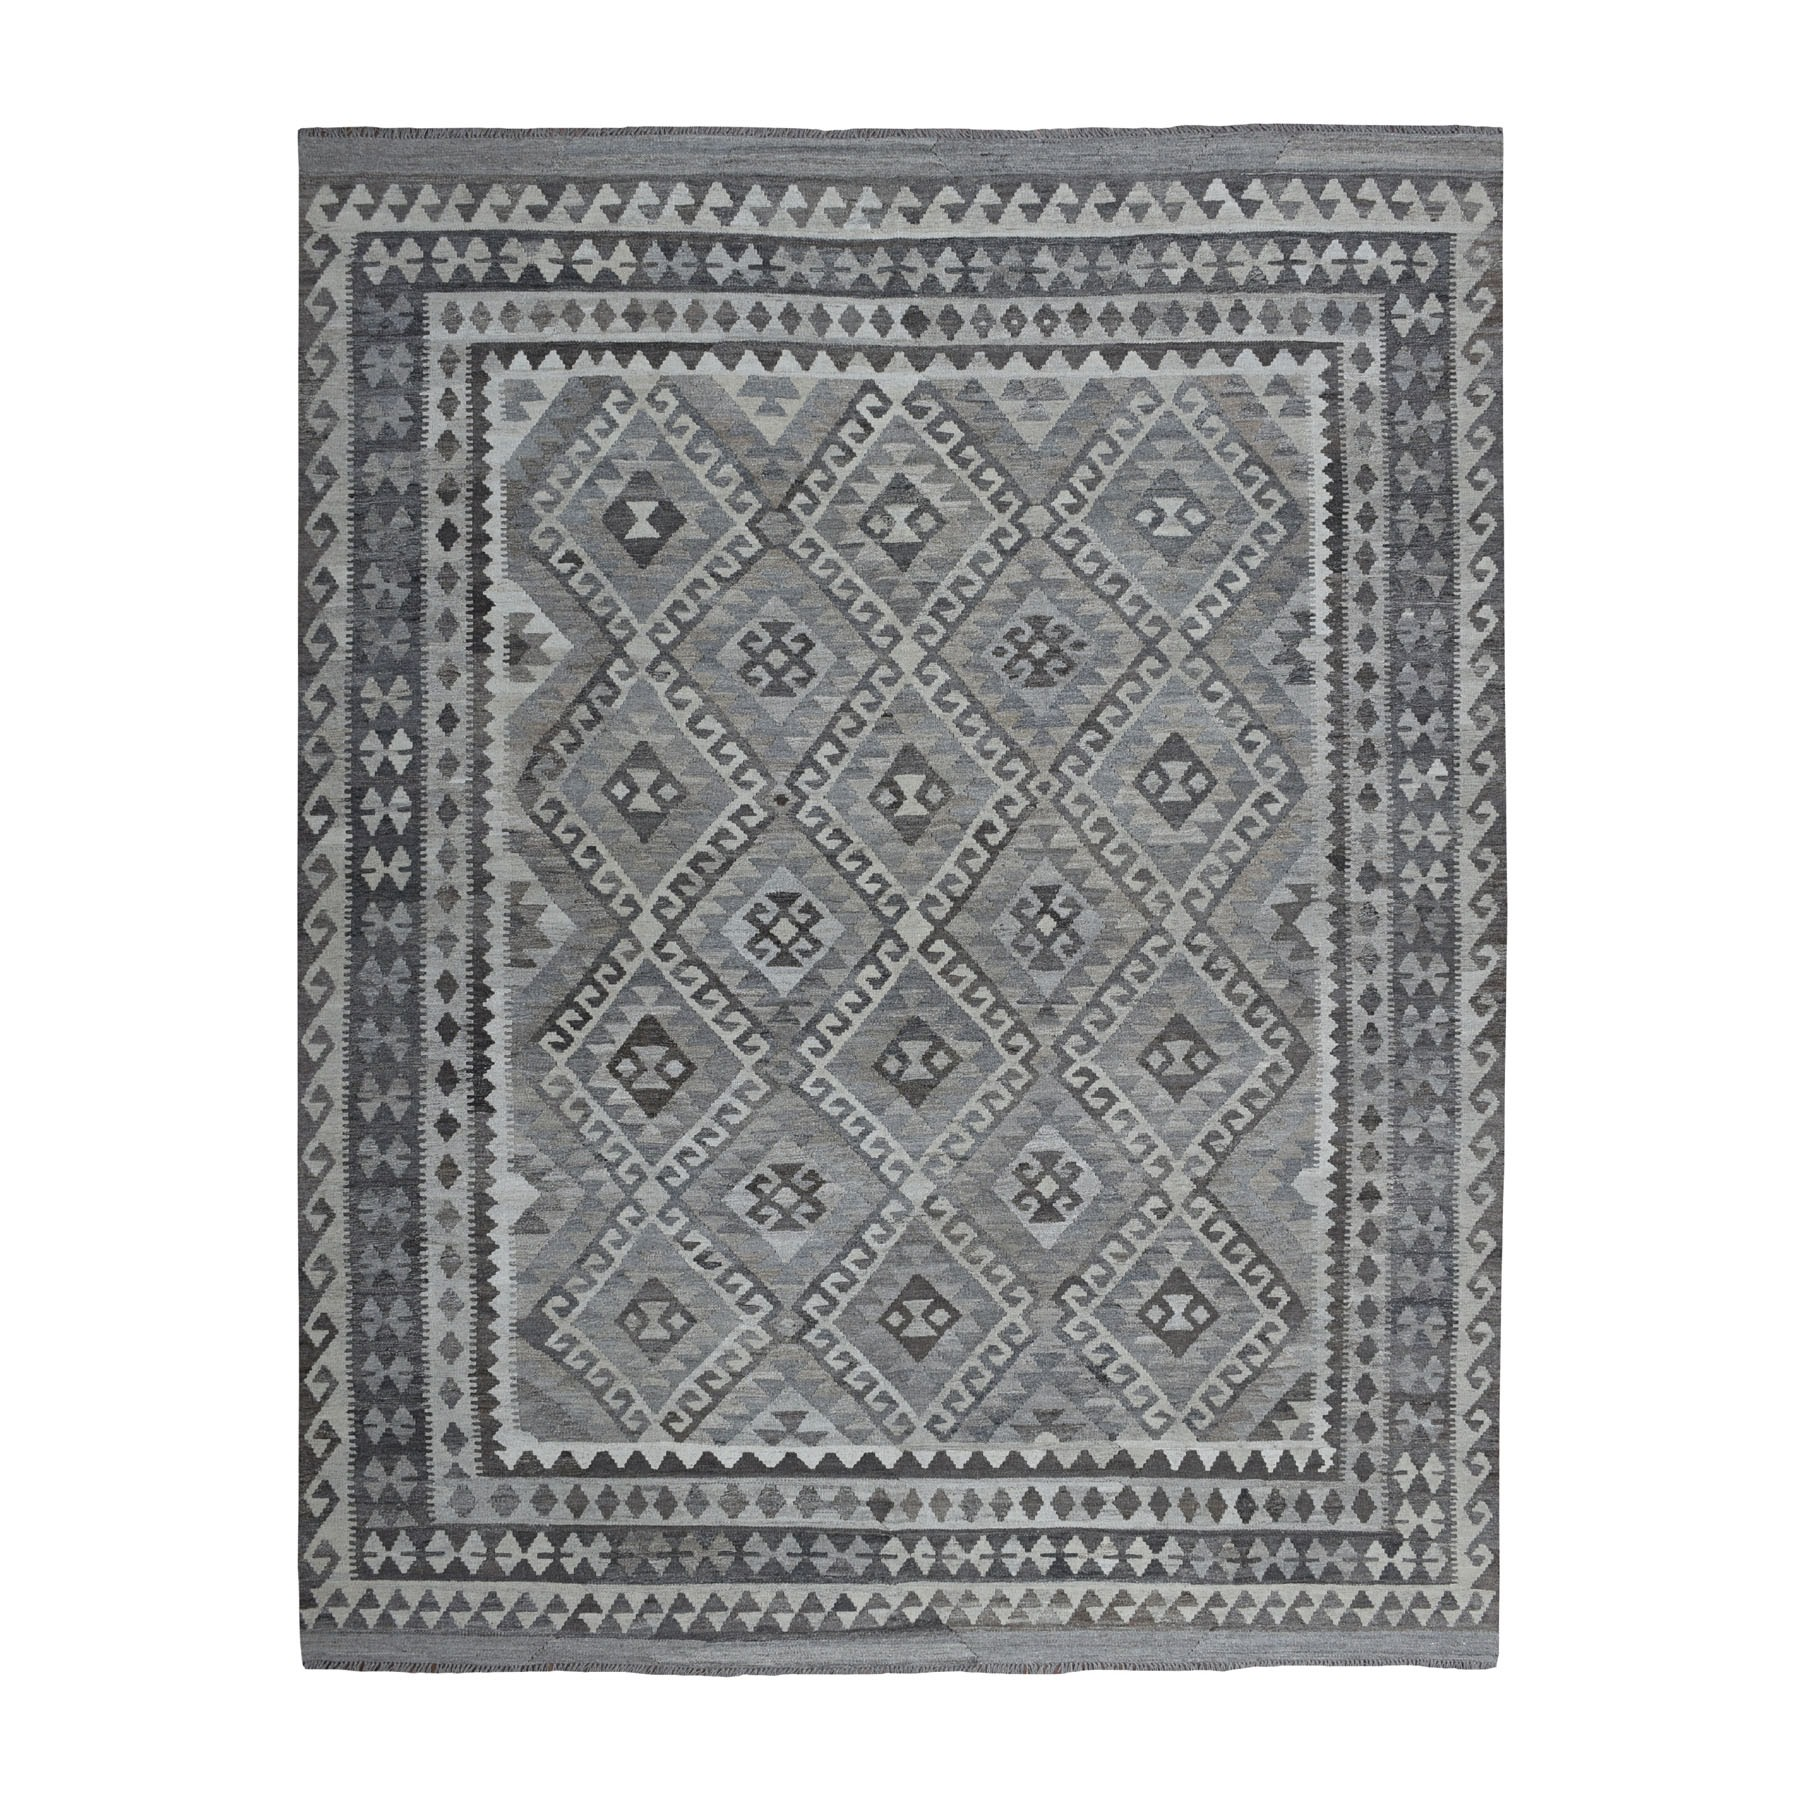 """8'3""""X9'7"""" Undyed Natural Wool Afghan Kilim Reversible Hand Woven Oriental Rug moaeb97b"""